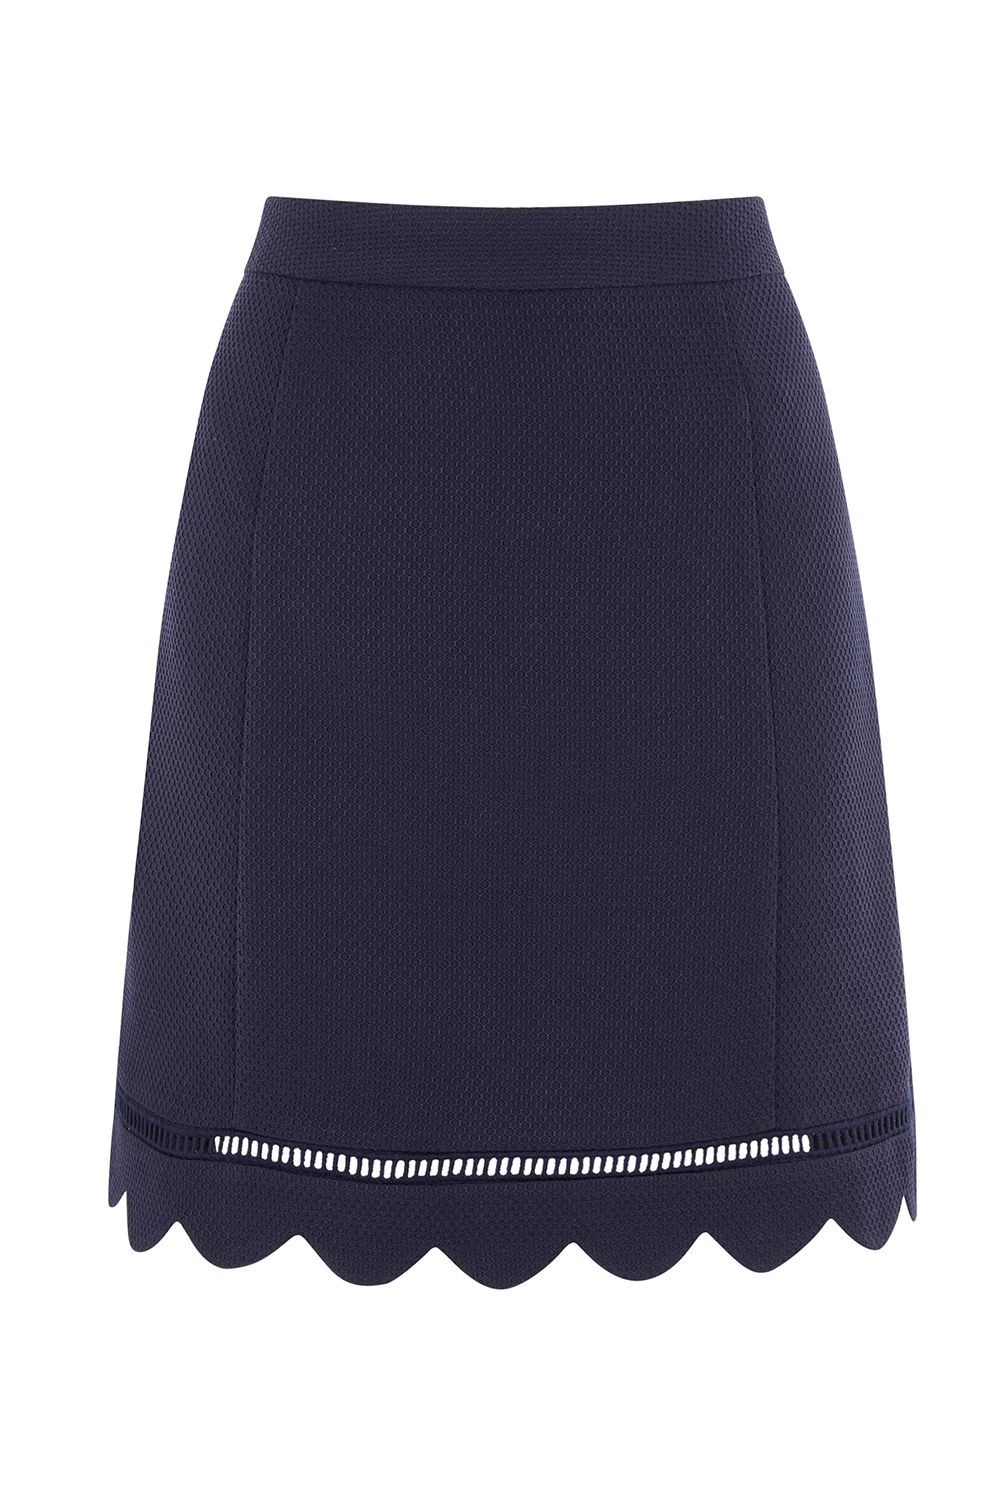 Oasis Scallop Skirt, Blue